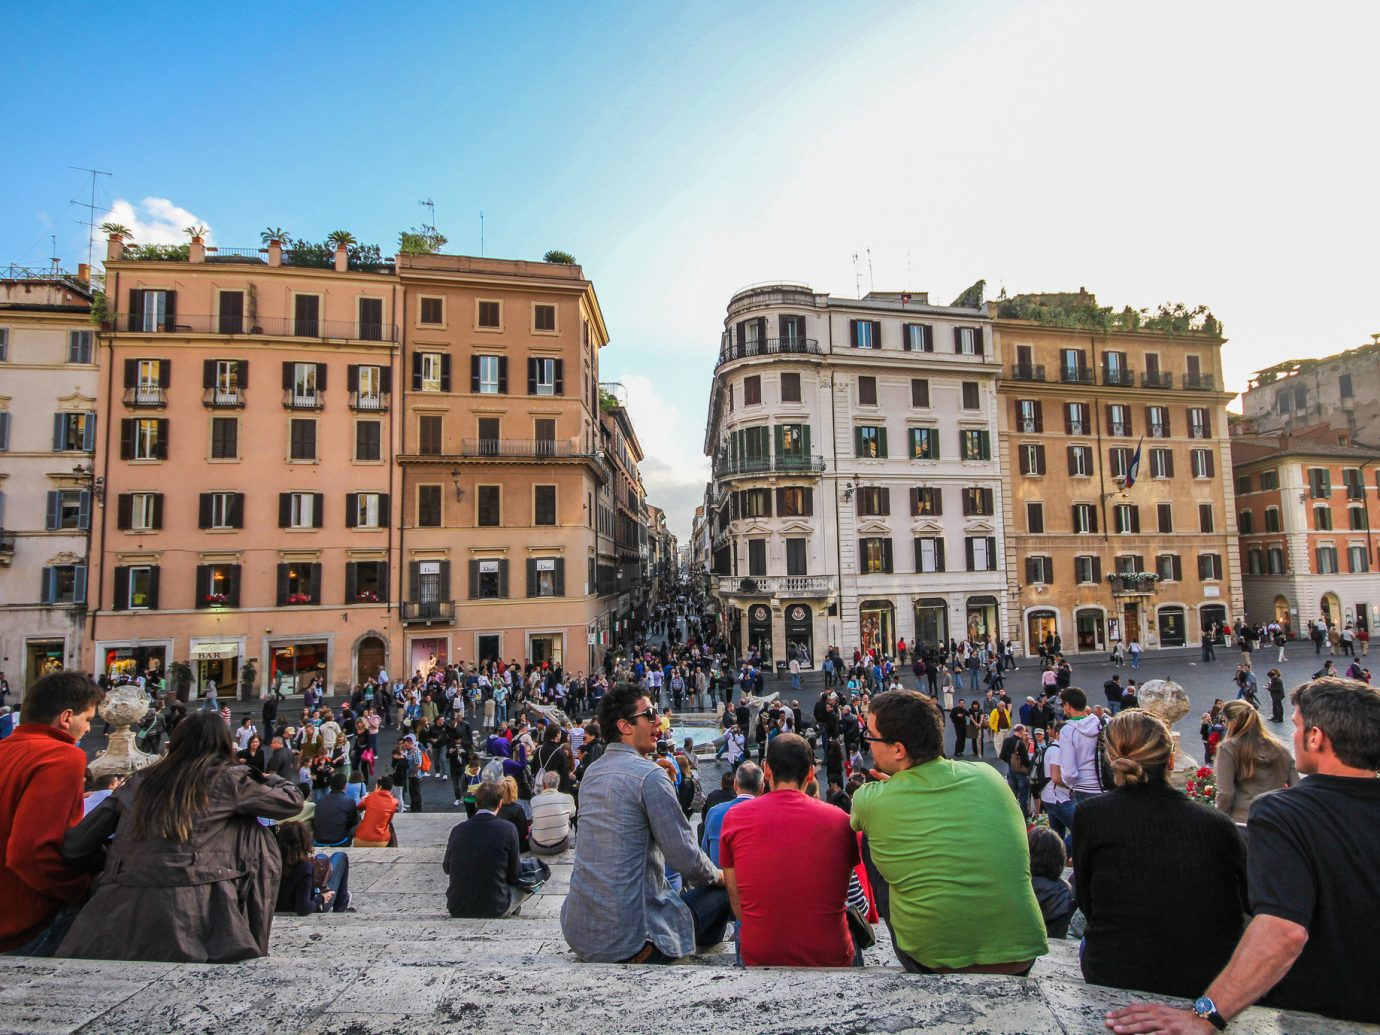 Travel Tips sky outdoor person City crowd people Town town square water group public space tourism urban area plaza street recreation fun building Downtown tours square